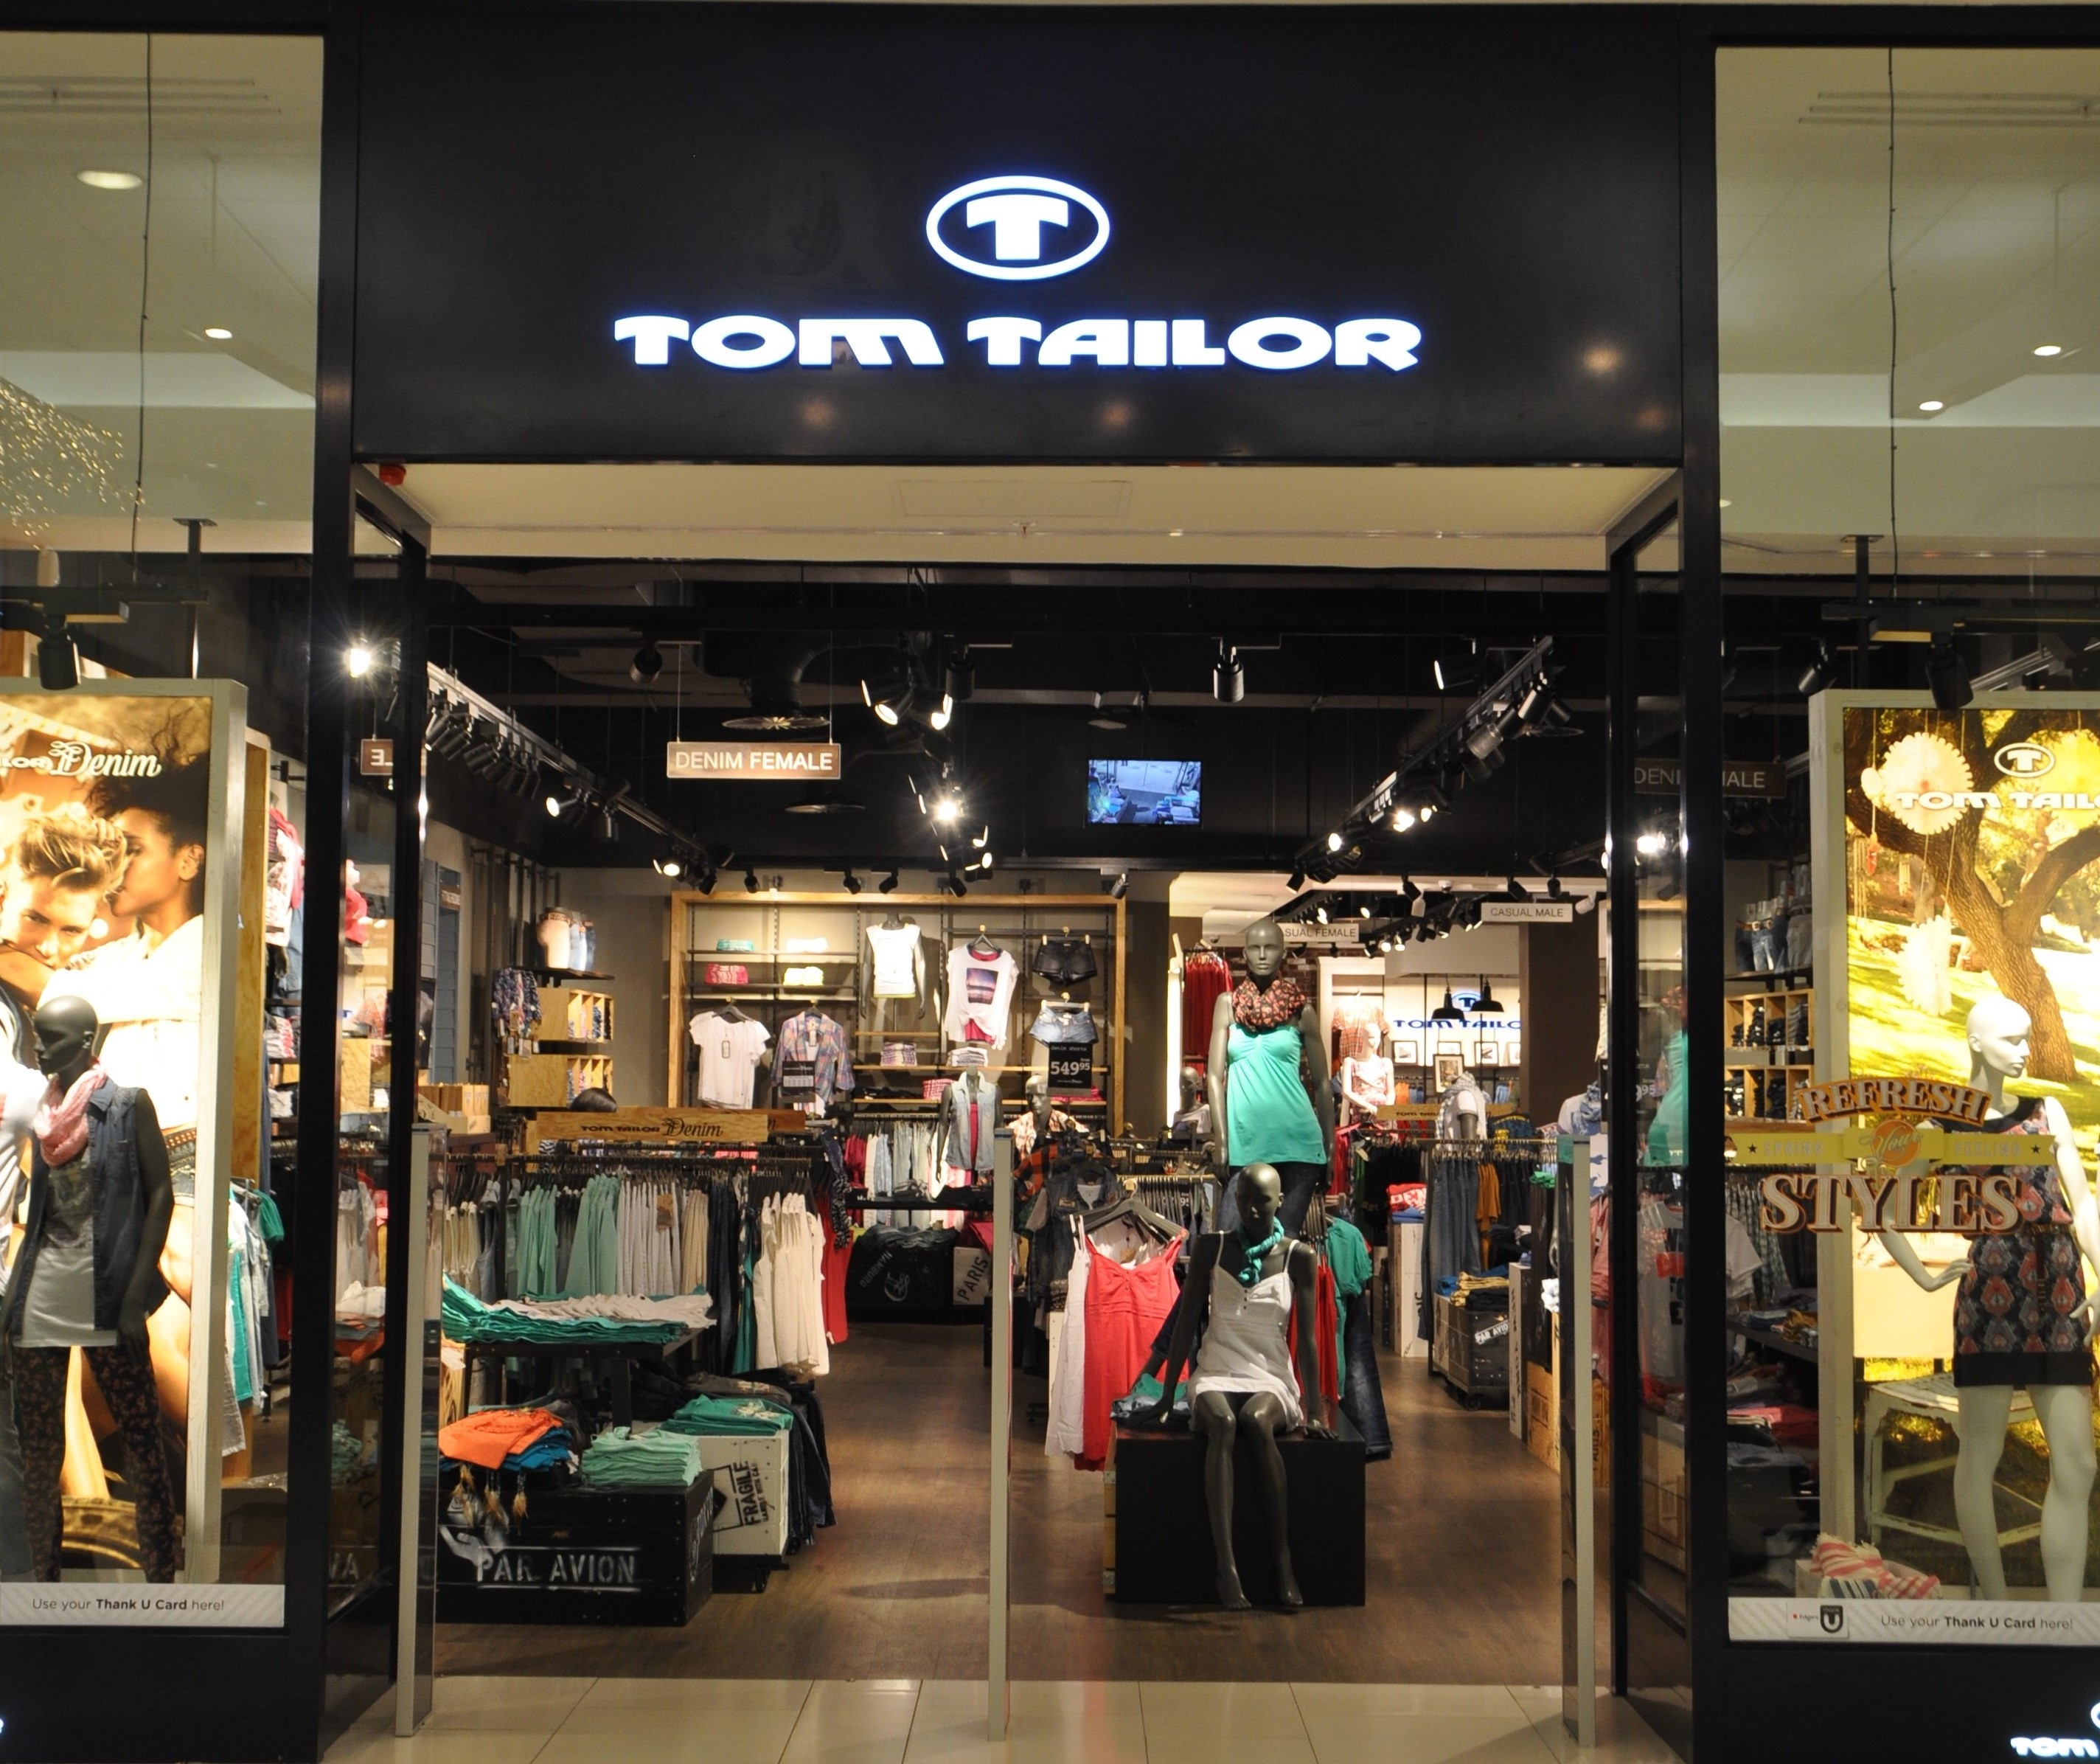 Tom Railor In Store Audio And Digital Signage Solution In Tom Tailor